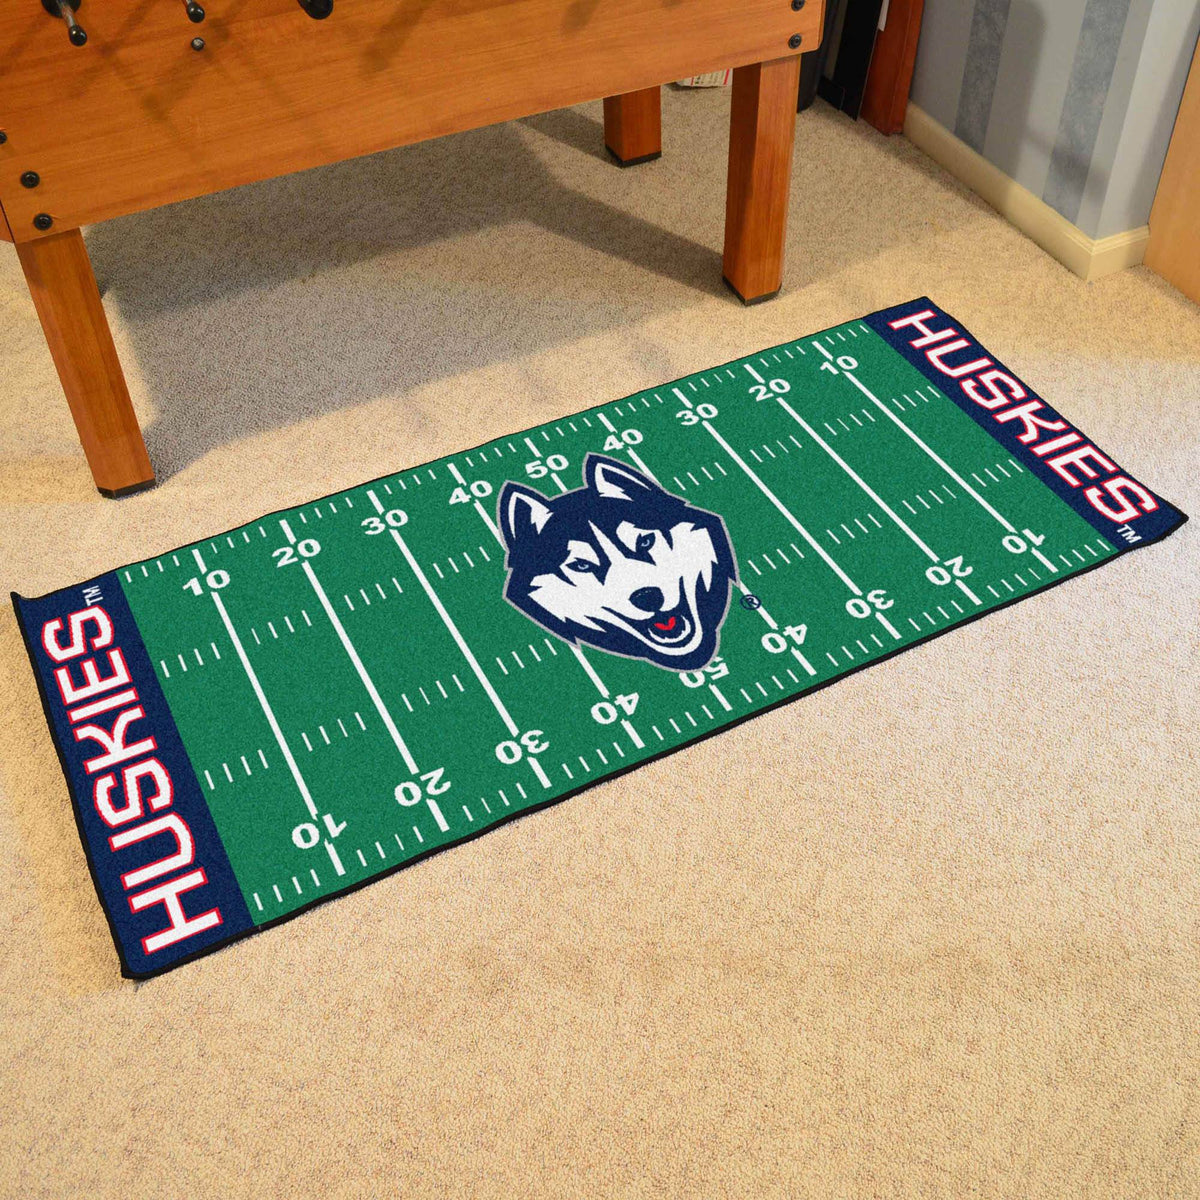 Collegiate - Football Field Runner Collegiate Mats, Rectangular Mats, Football Field Runner, Collegiate, Home Fan Mats Connecticut